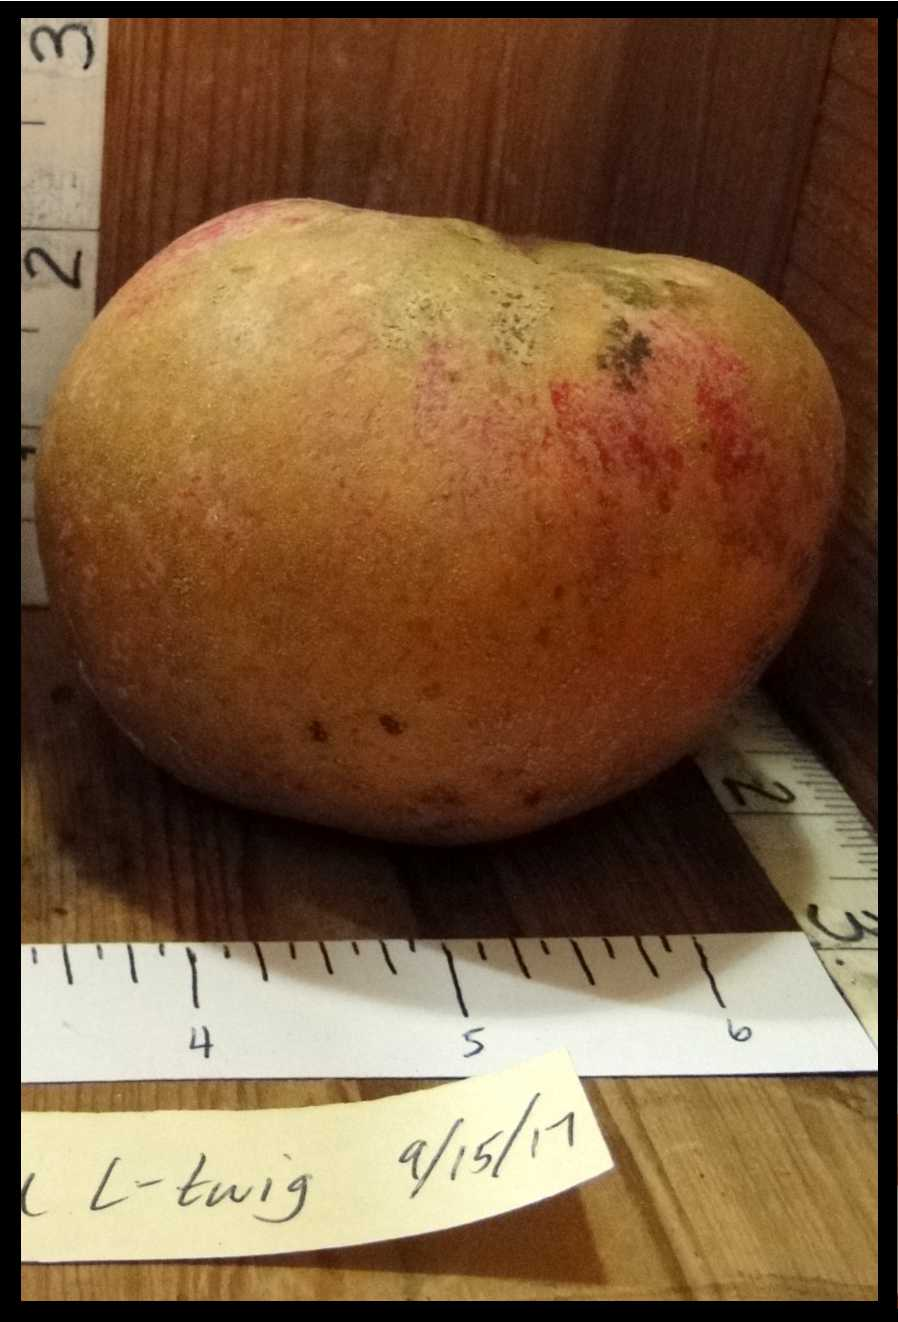 tan apple with slight red blush, mottling, and slight striping